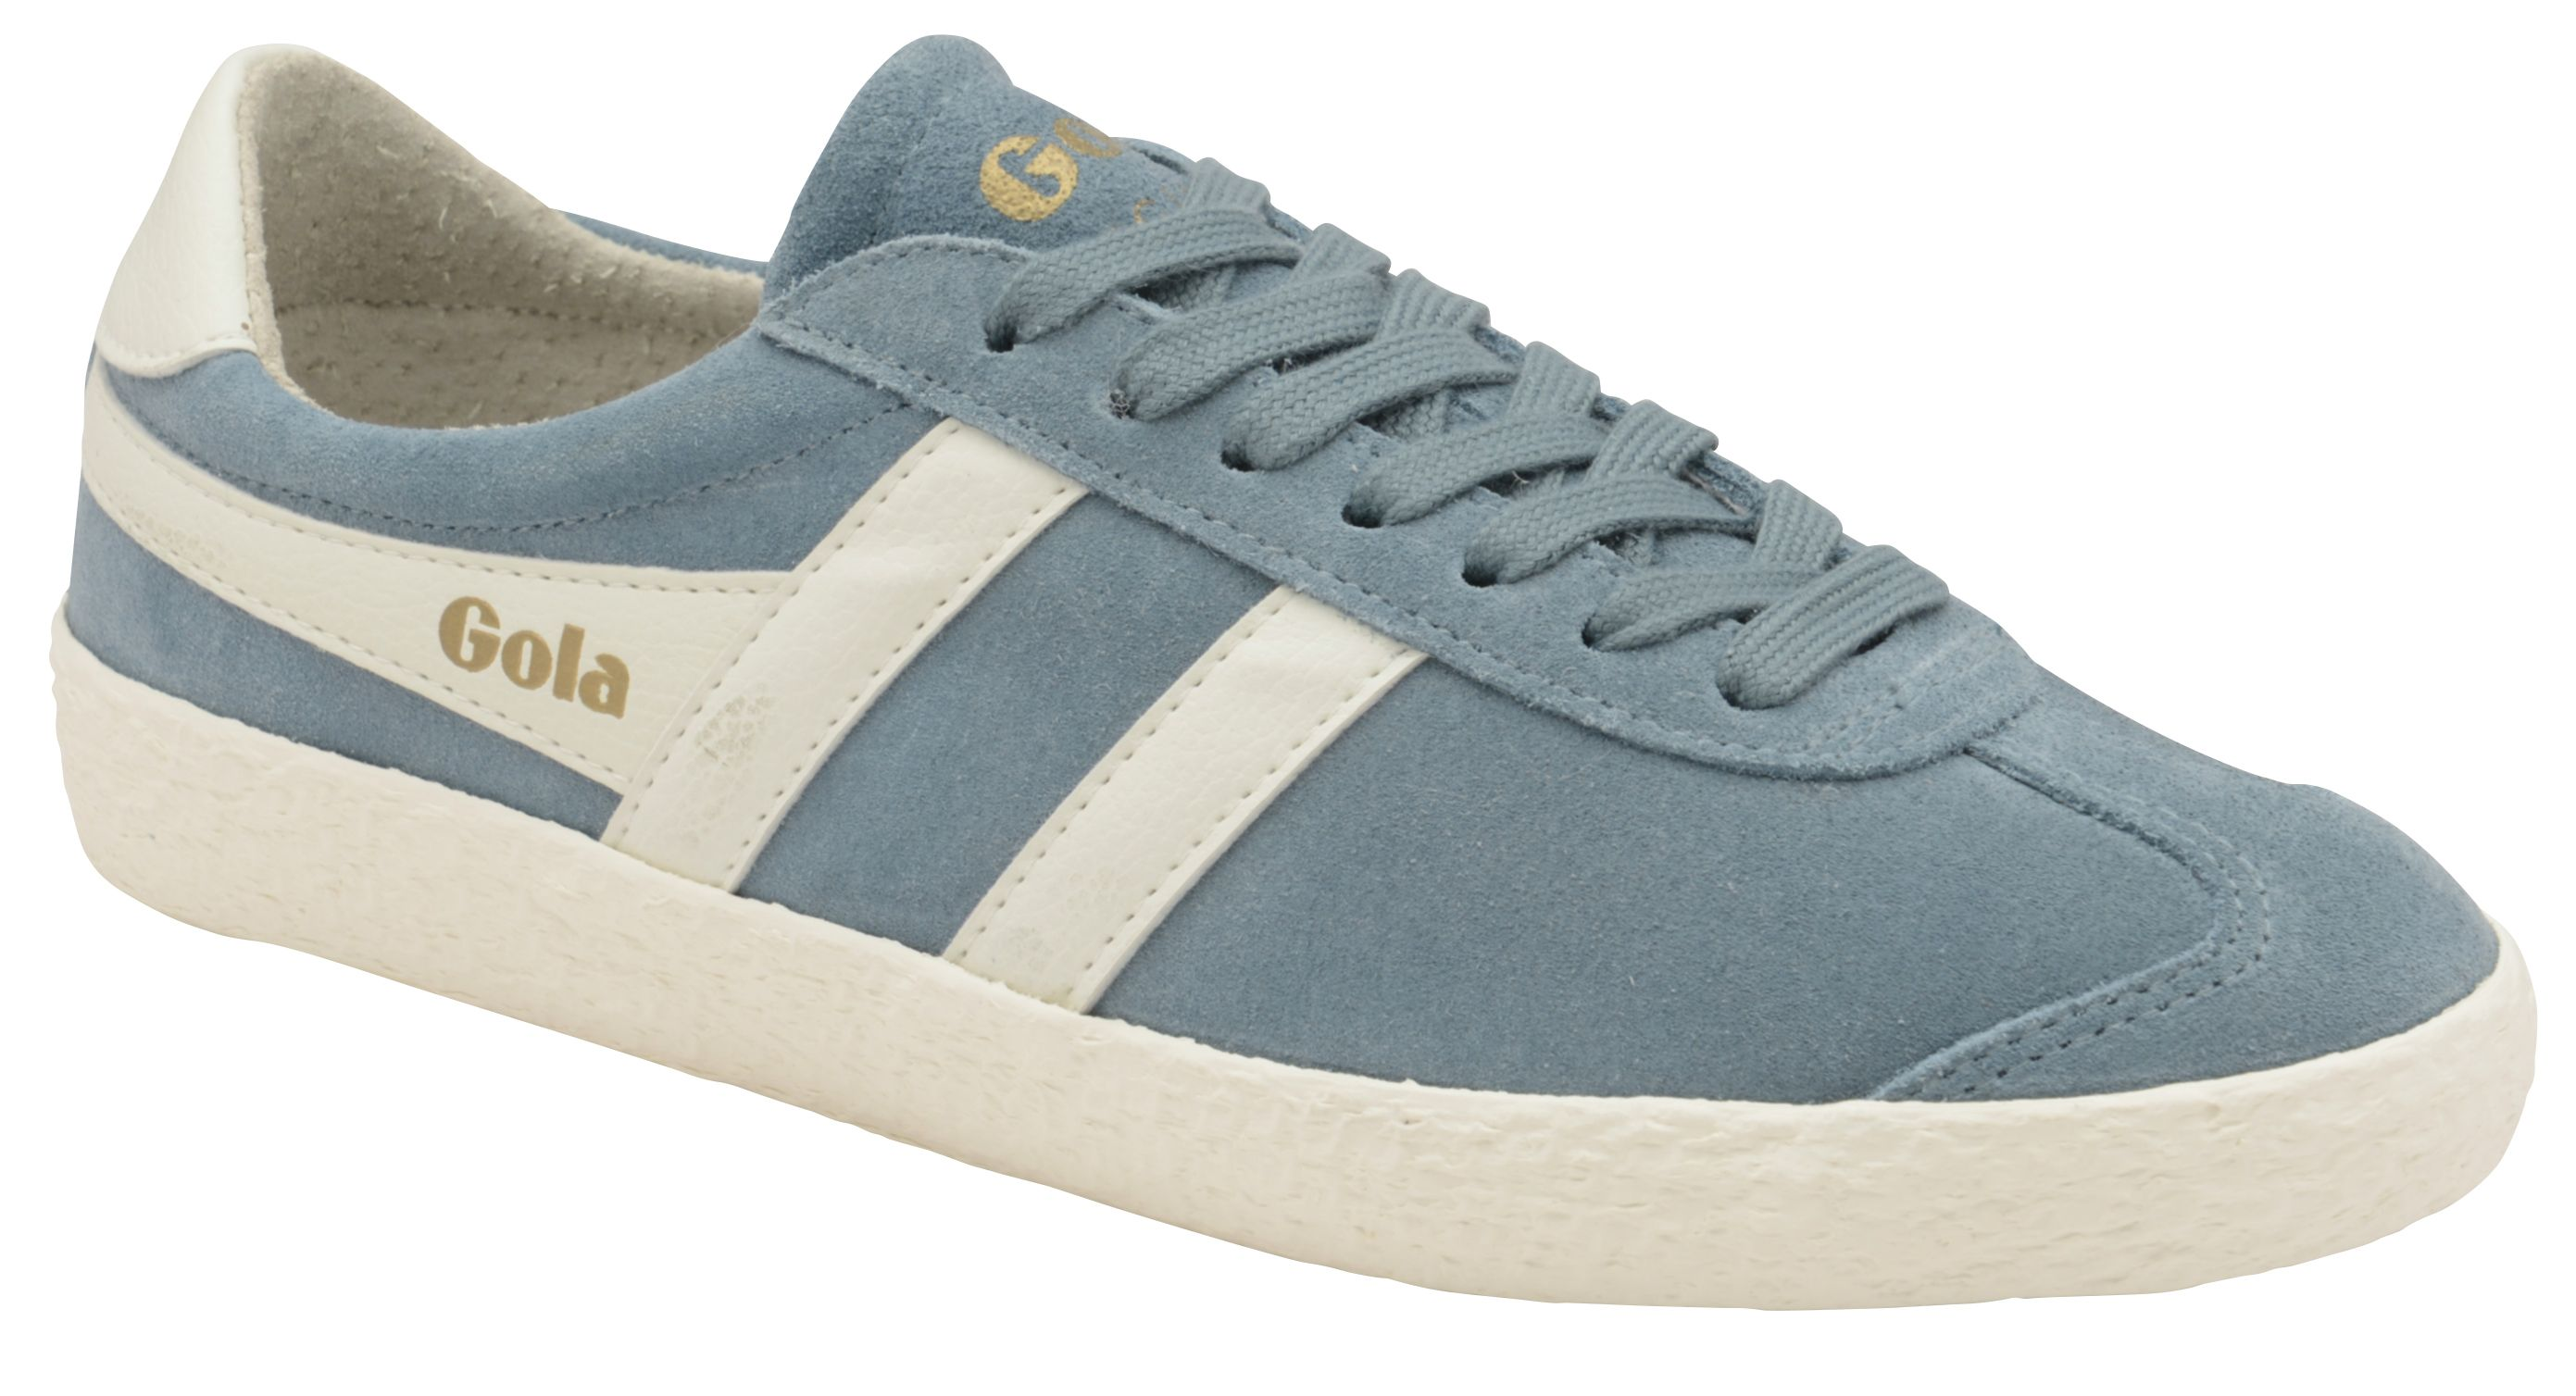 Gola Specialist Lace Up Trainers, Teal